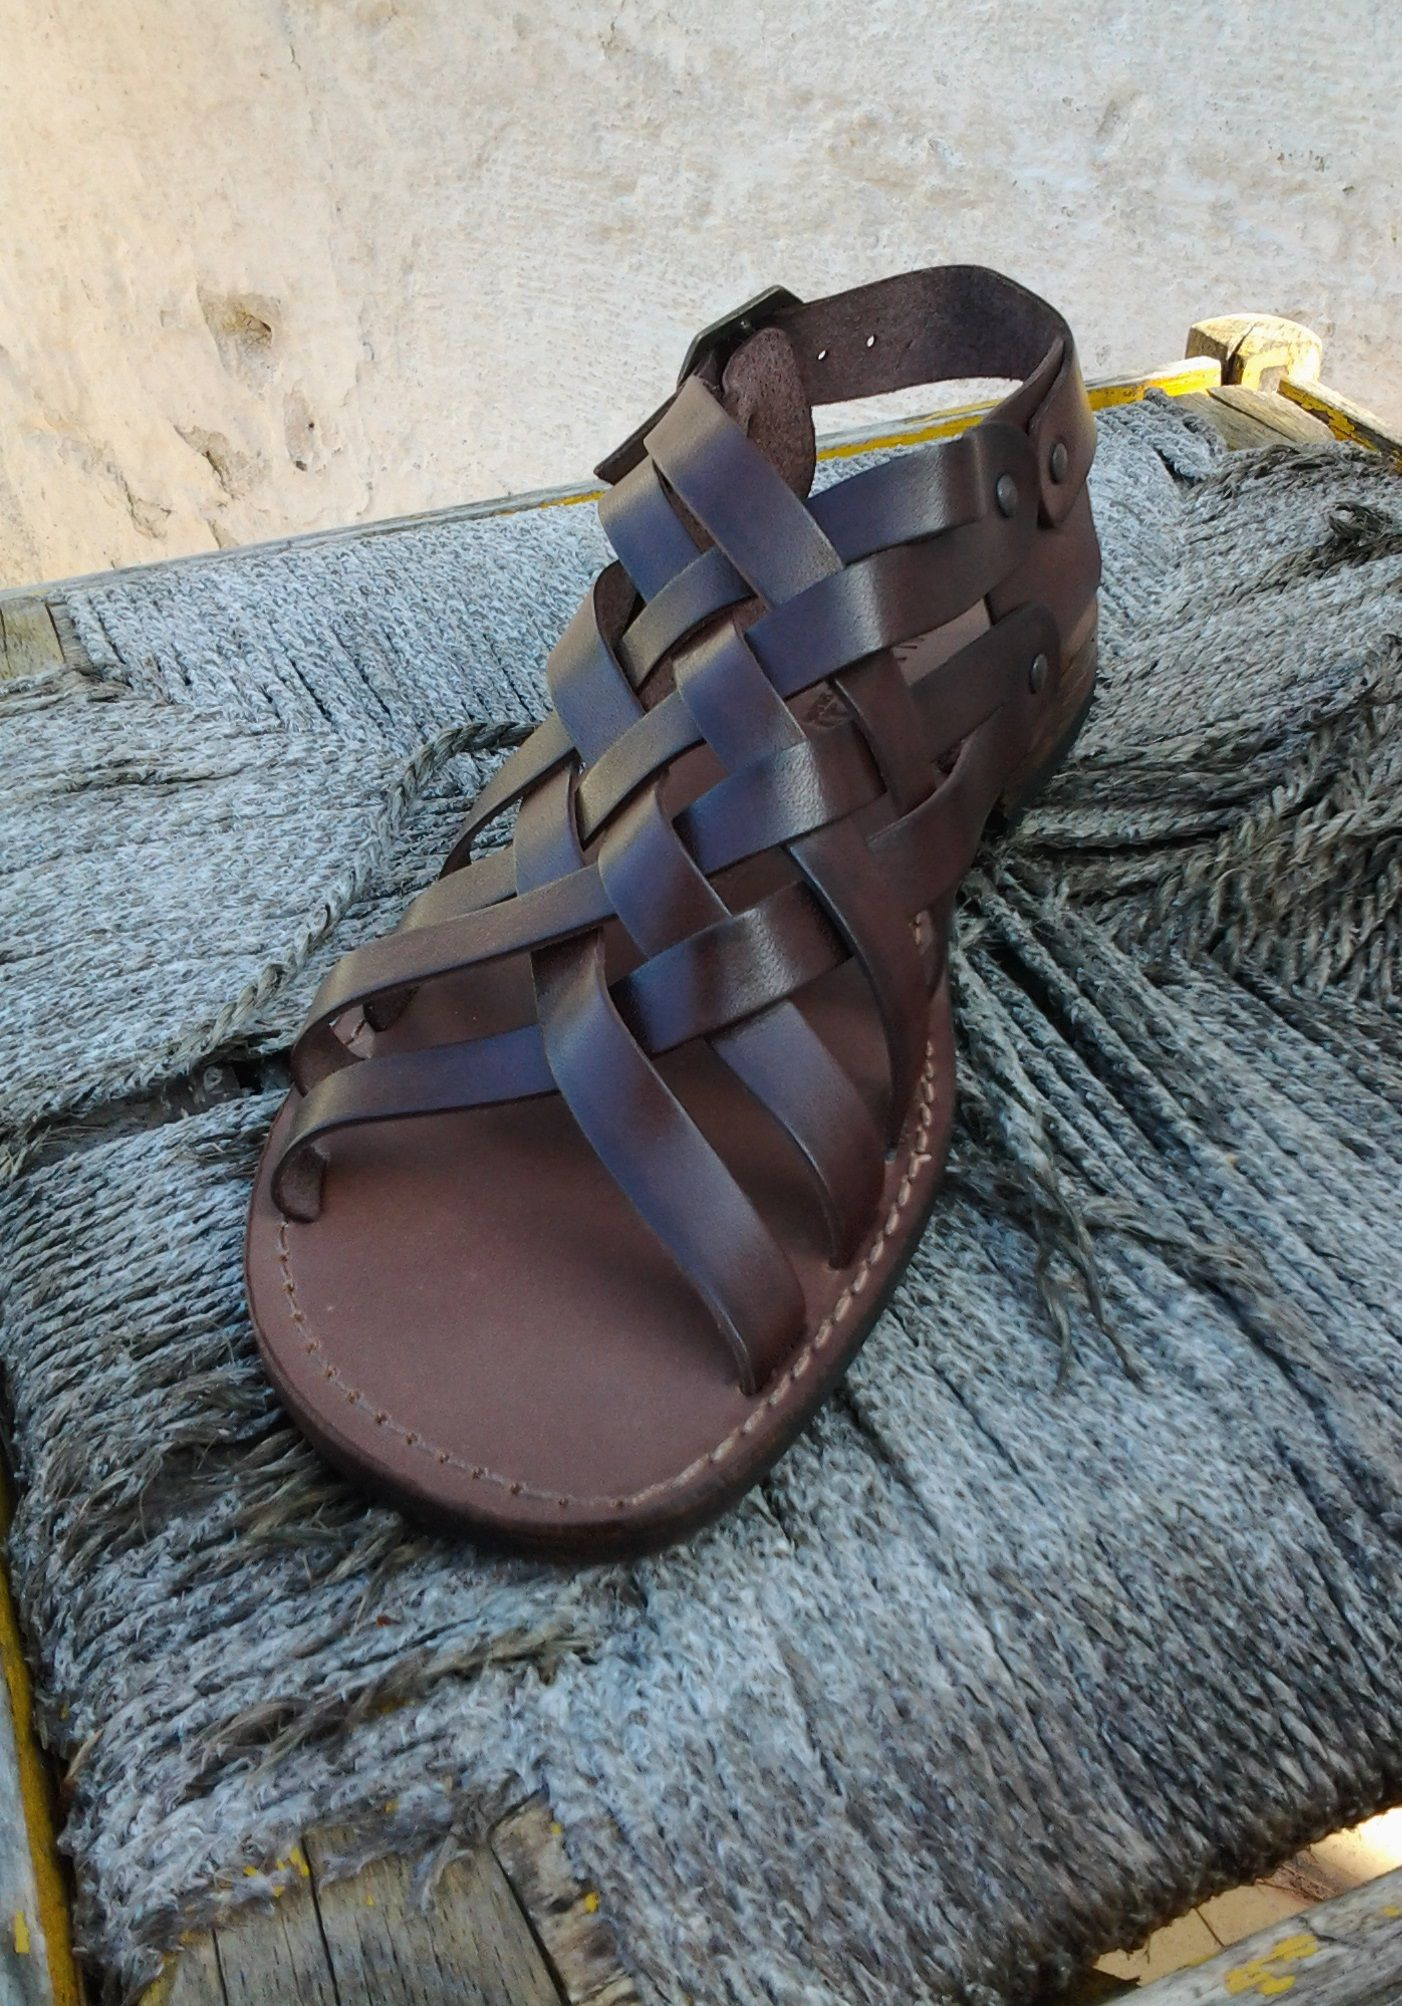 ad984e270 Sandals 'Essenza' :-) | Men's Shoes | Pinterest | Sandalias ...